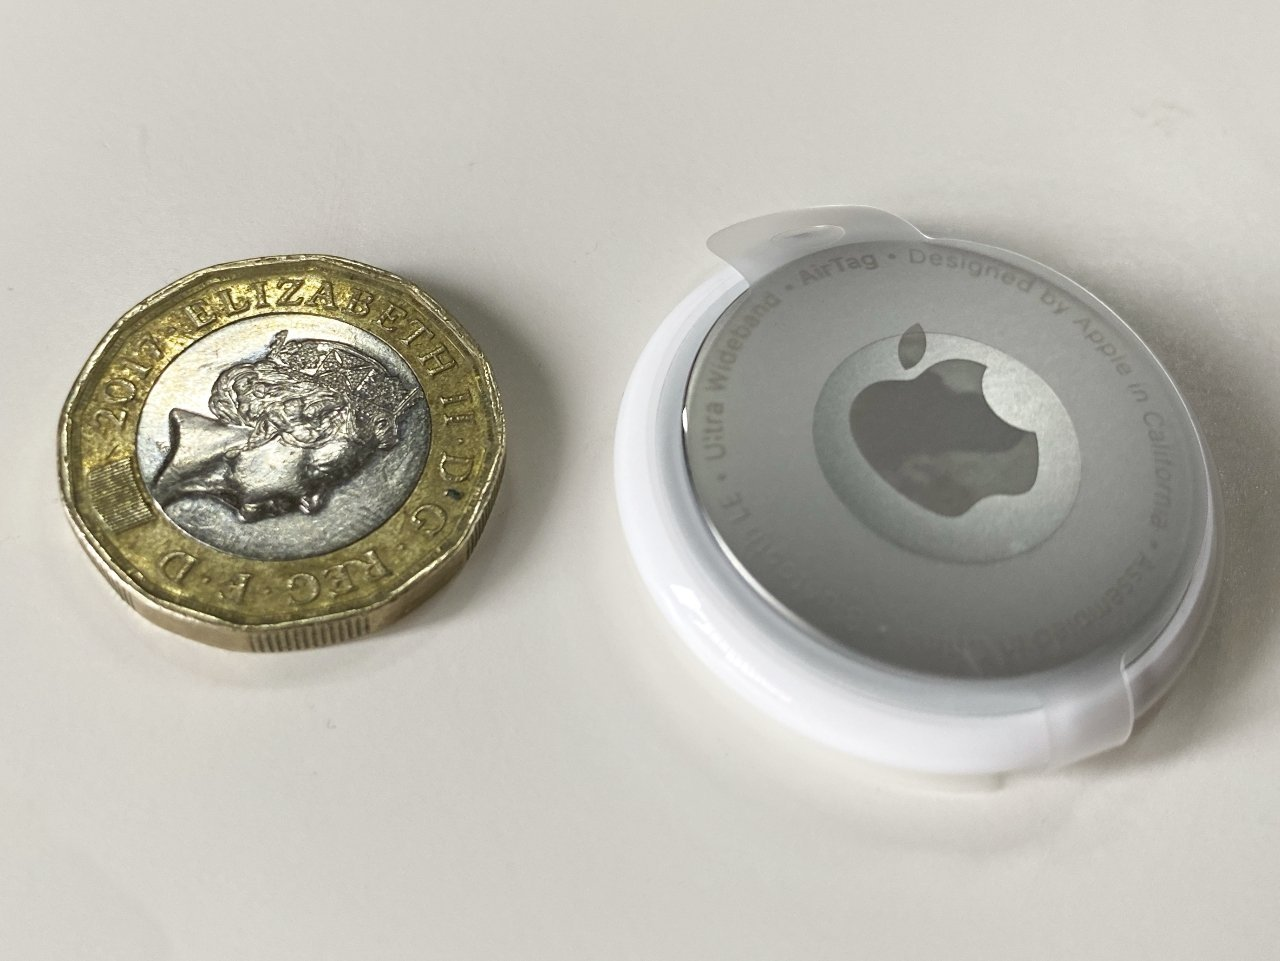 AirTag is truly tiny (One Pound coin for scale)